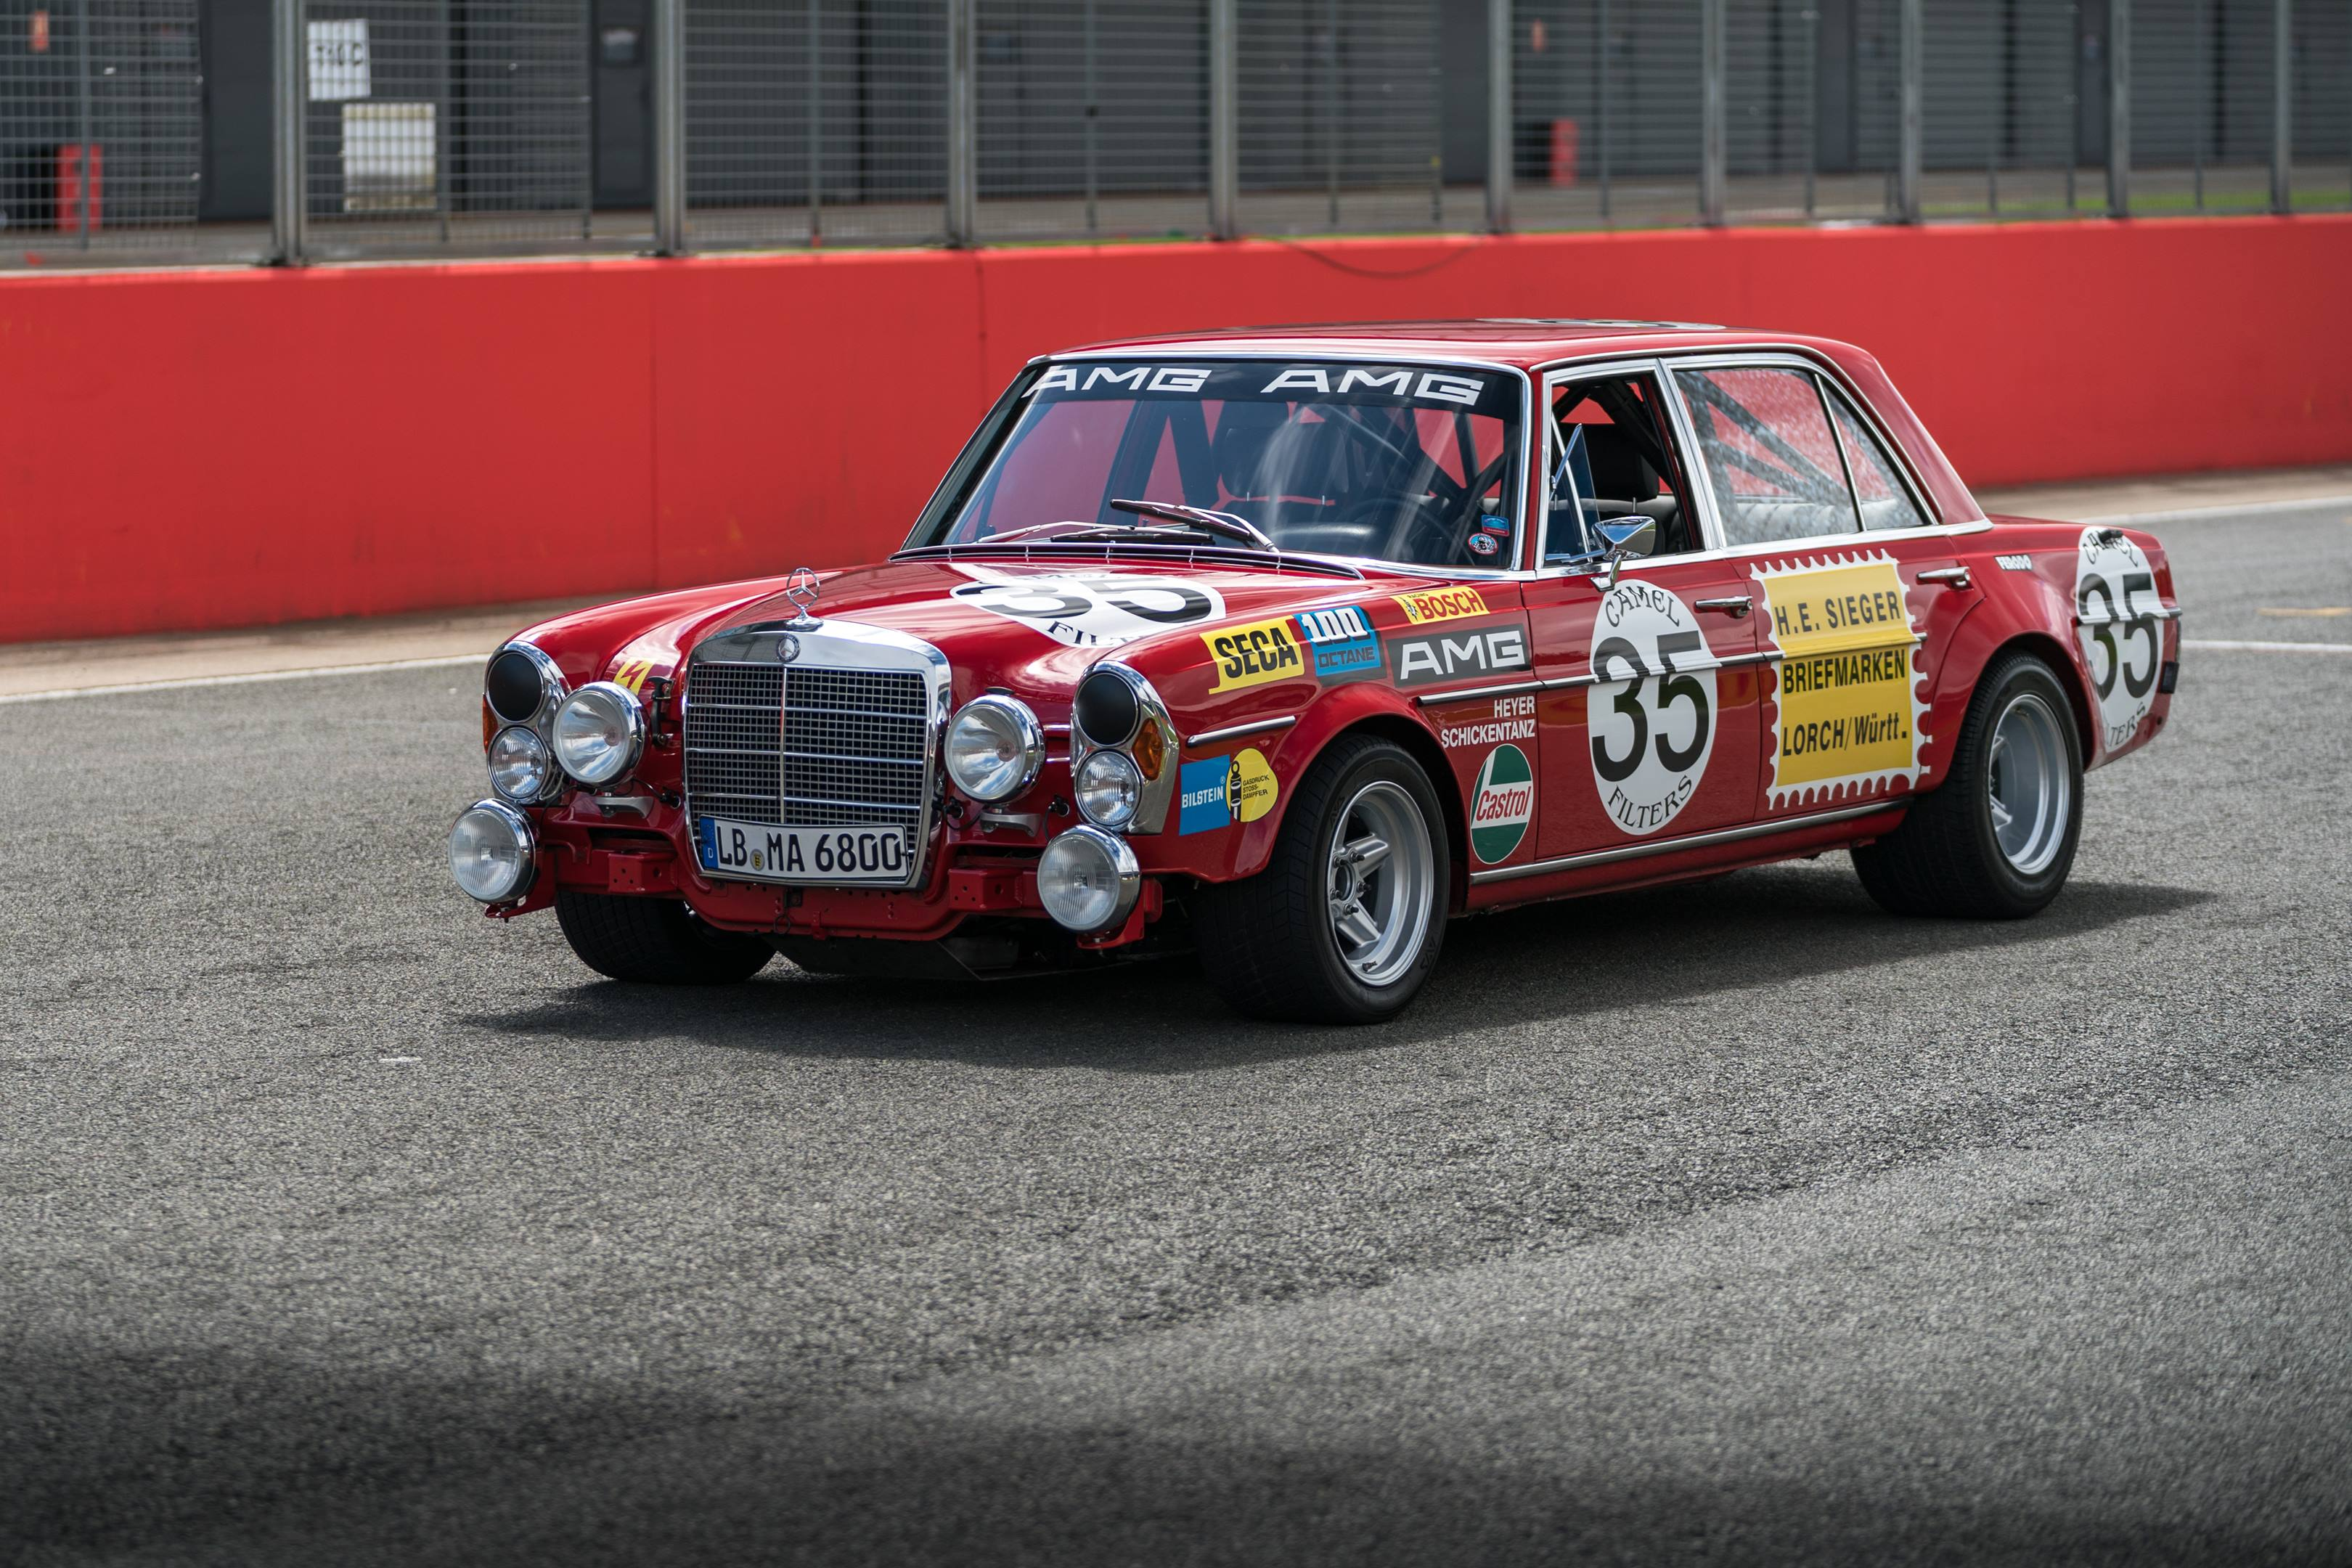 mercedes benz amg 300SEL 6.3 red pig silverstone